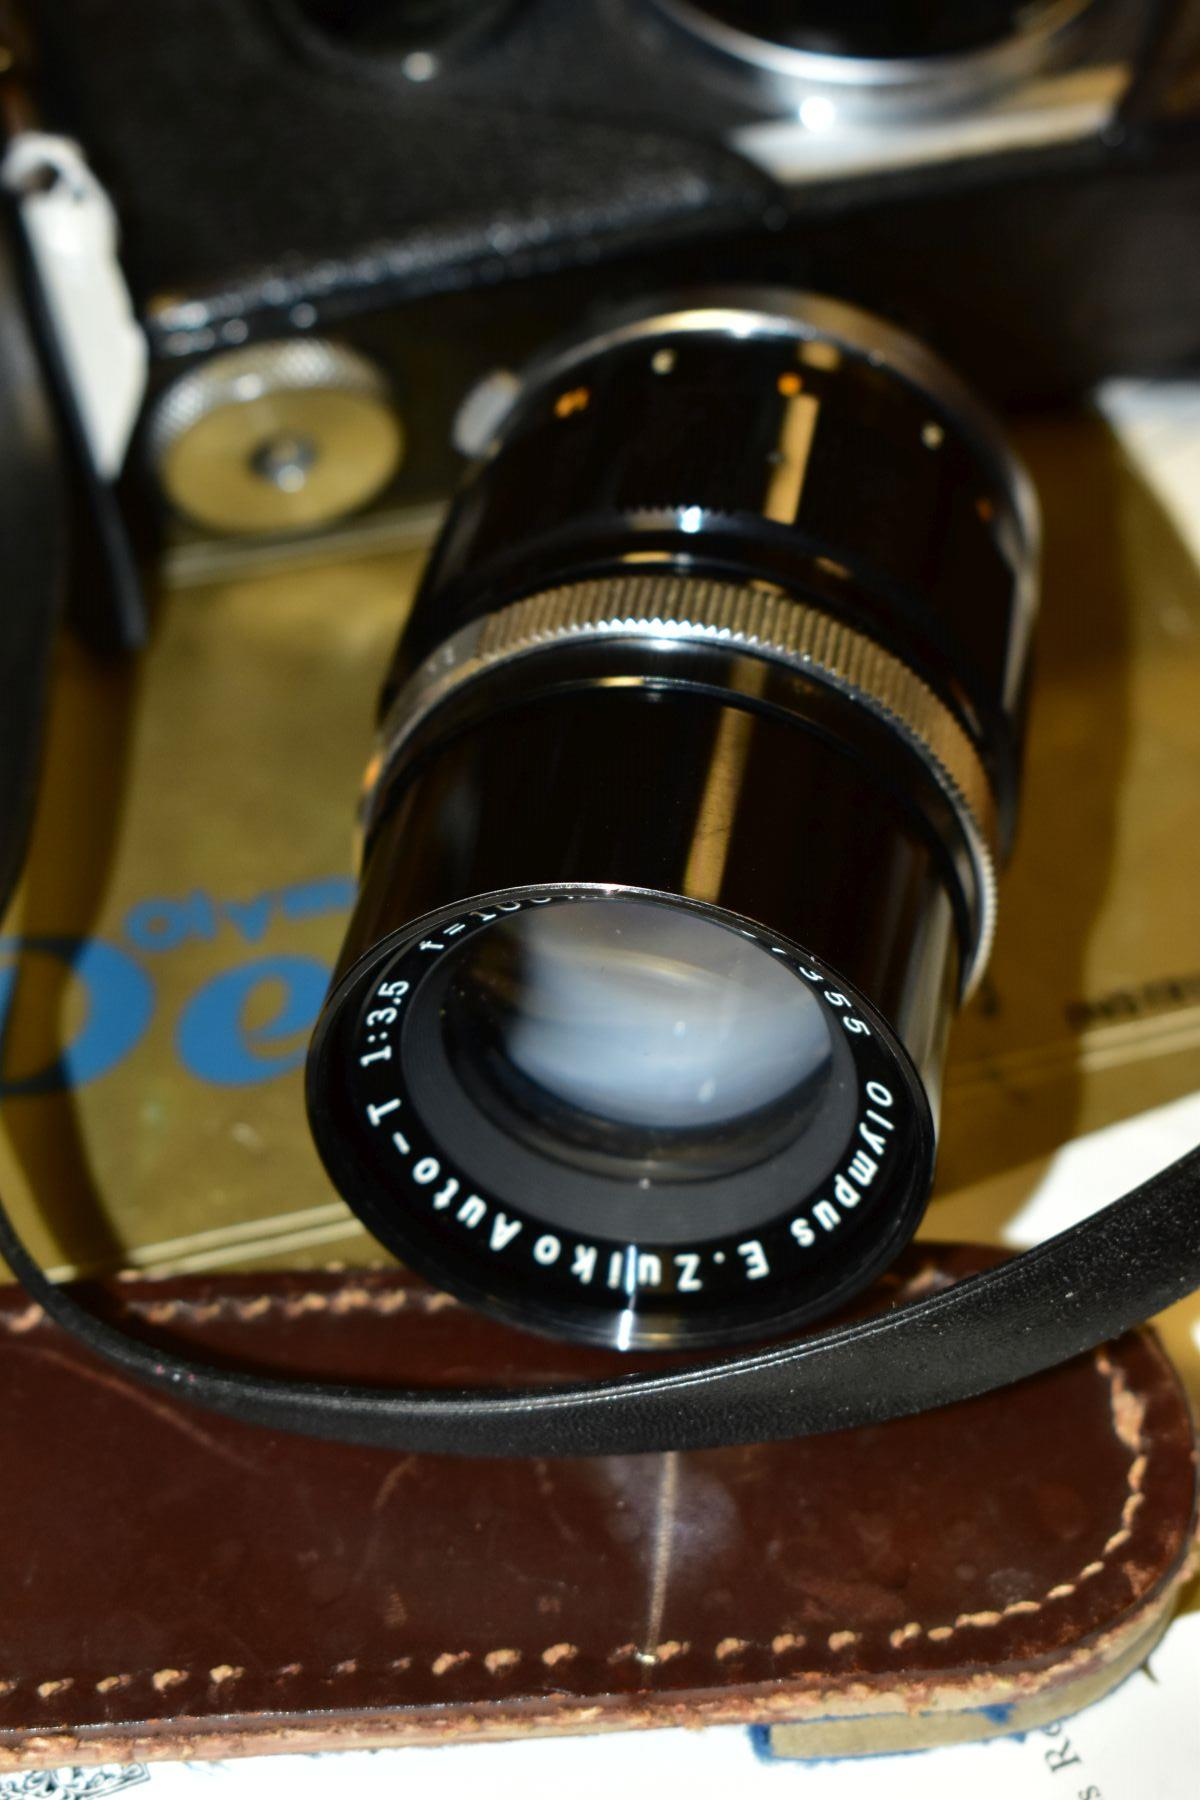 AN ORIGINAL OLYMPUS F HALF FRAME FILM CAMERA fitted with a 38mm f1.8 Olympus Zuiko lens and F T - Image 4 of 11